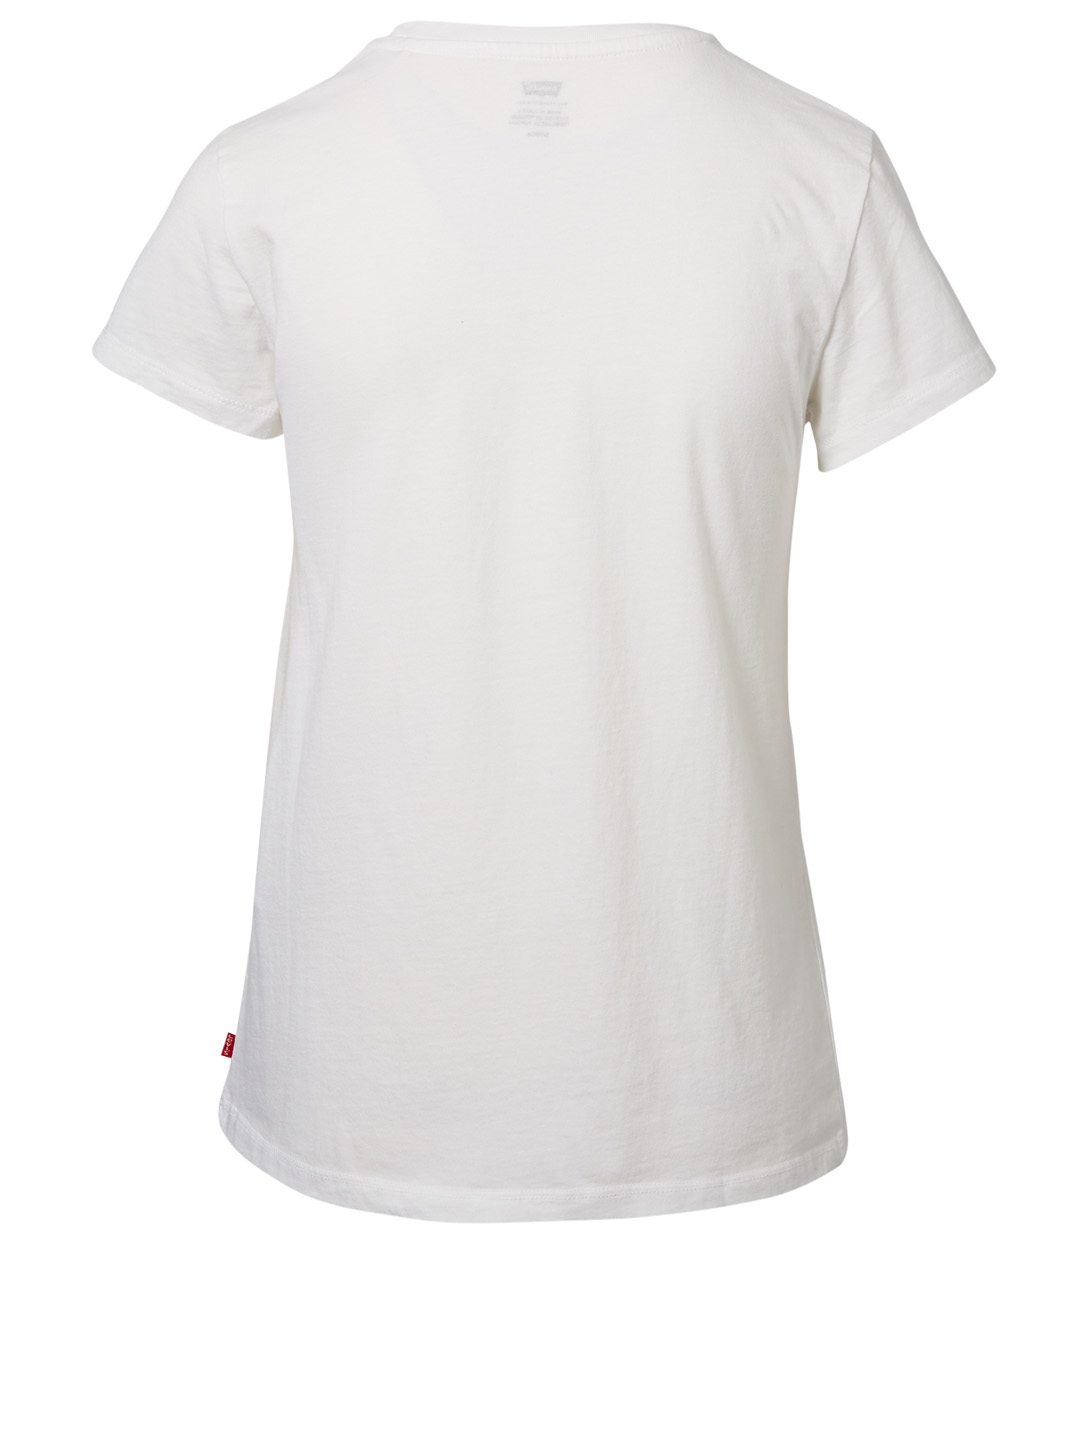 LEVI'S Ice Cream Photo T-Shirt Women's White